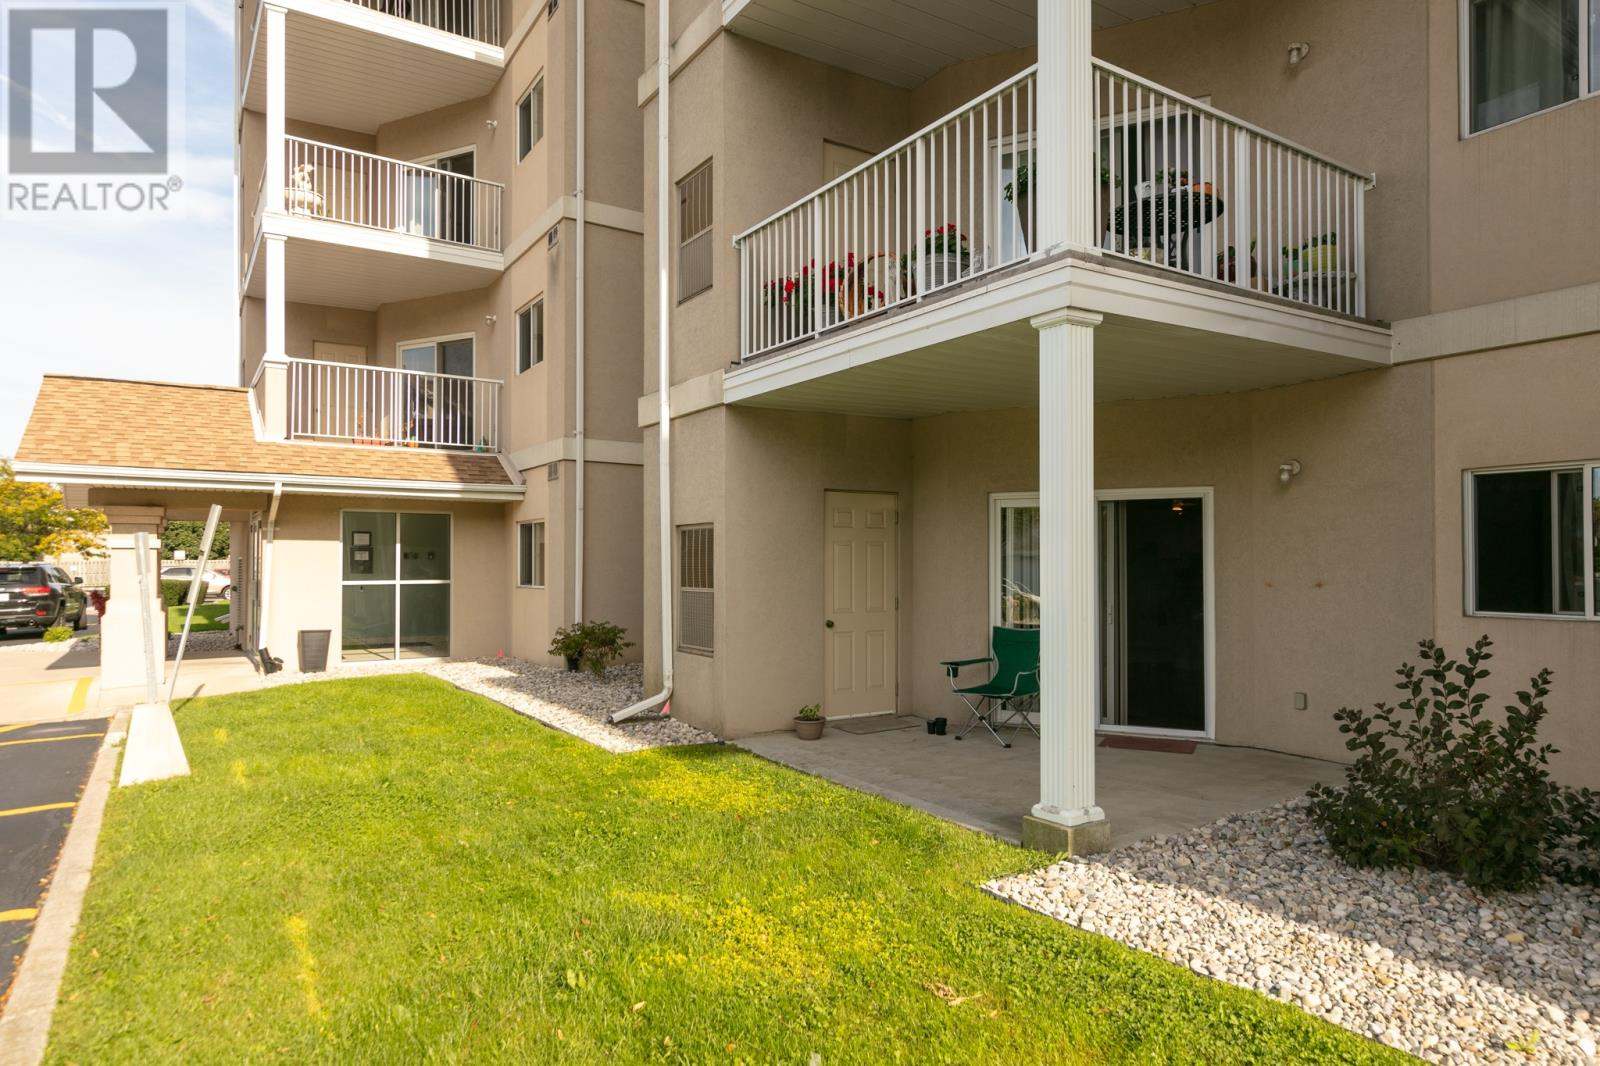 CAREFREE CONDO LIFESTYLE WITH PATIO IN SOUTH WINDSOR